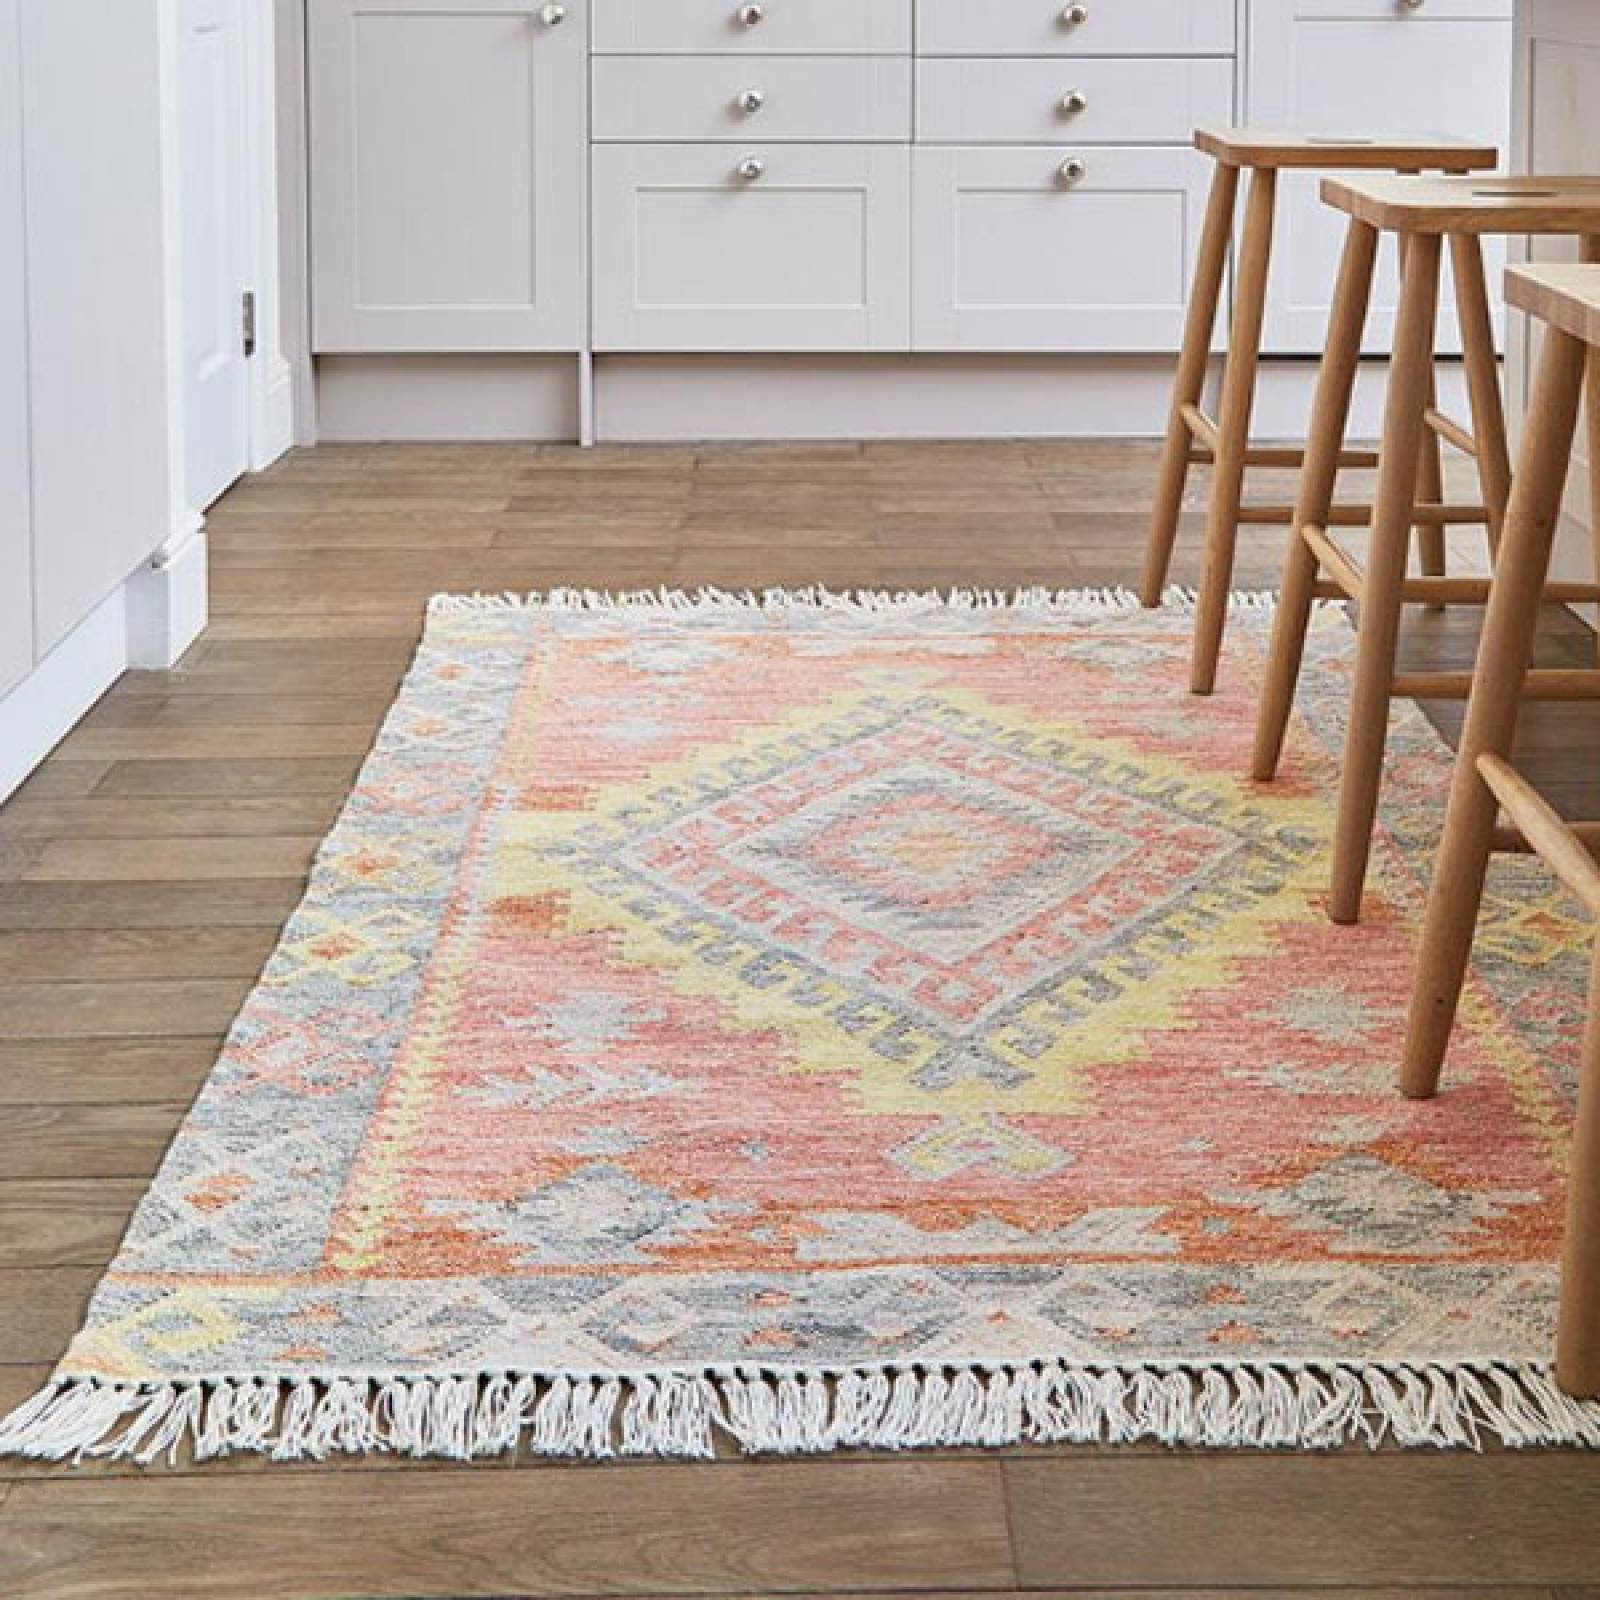 Tarifa Kilim Rug Runner 240x70cm Recycled Bottle Rug thumbnails